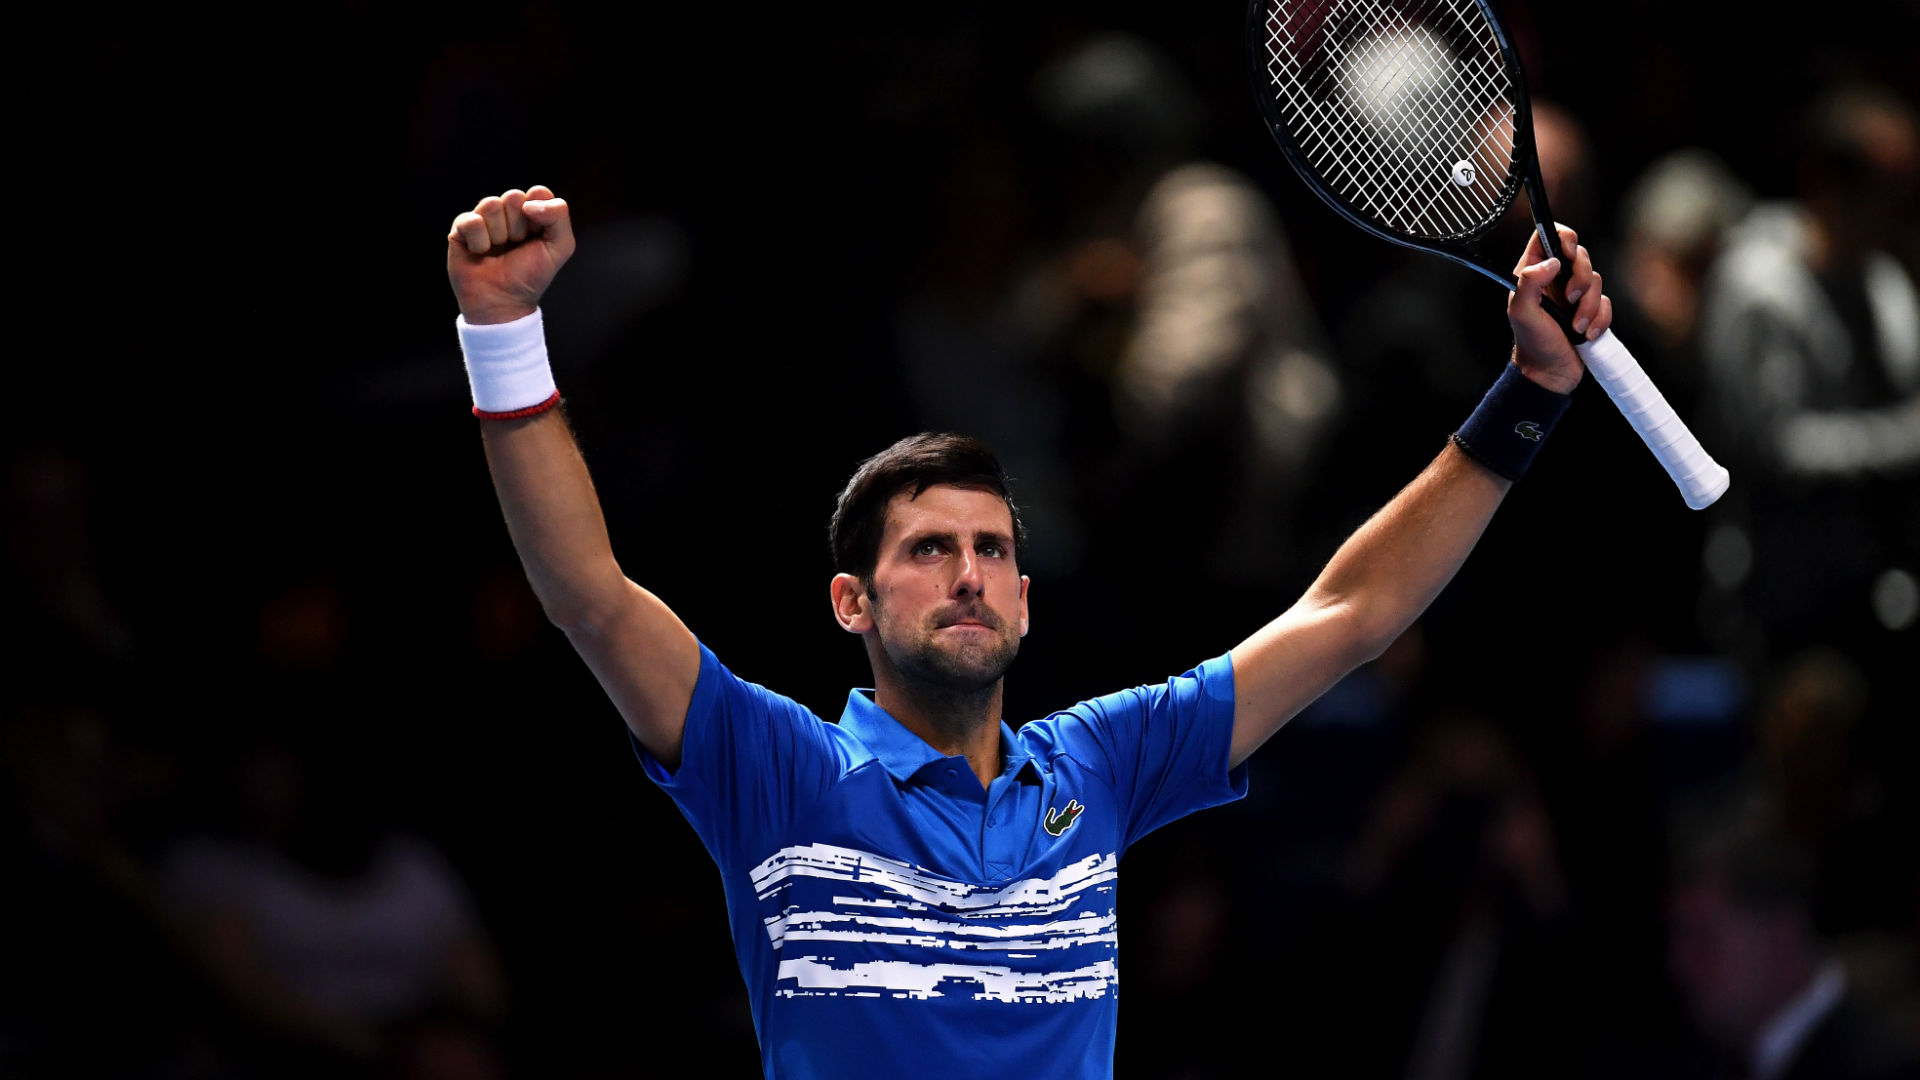 Sensational Djokovic dispatches Berrettini to kick-off ATP Finals in style